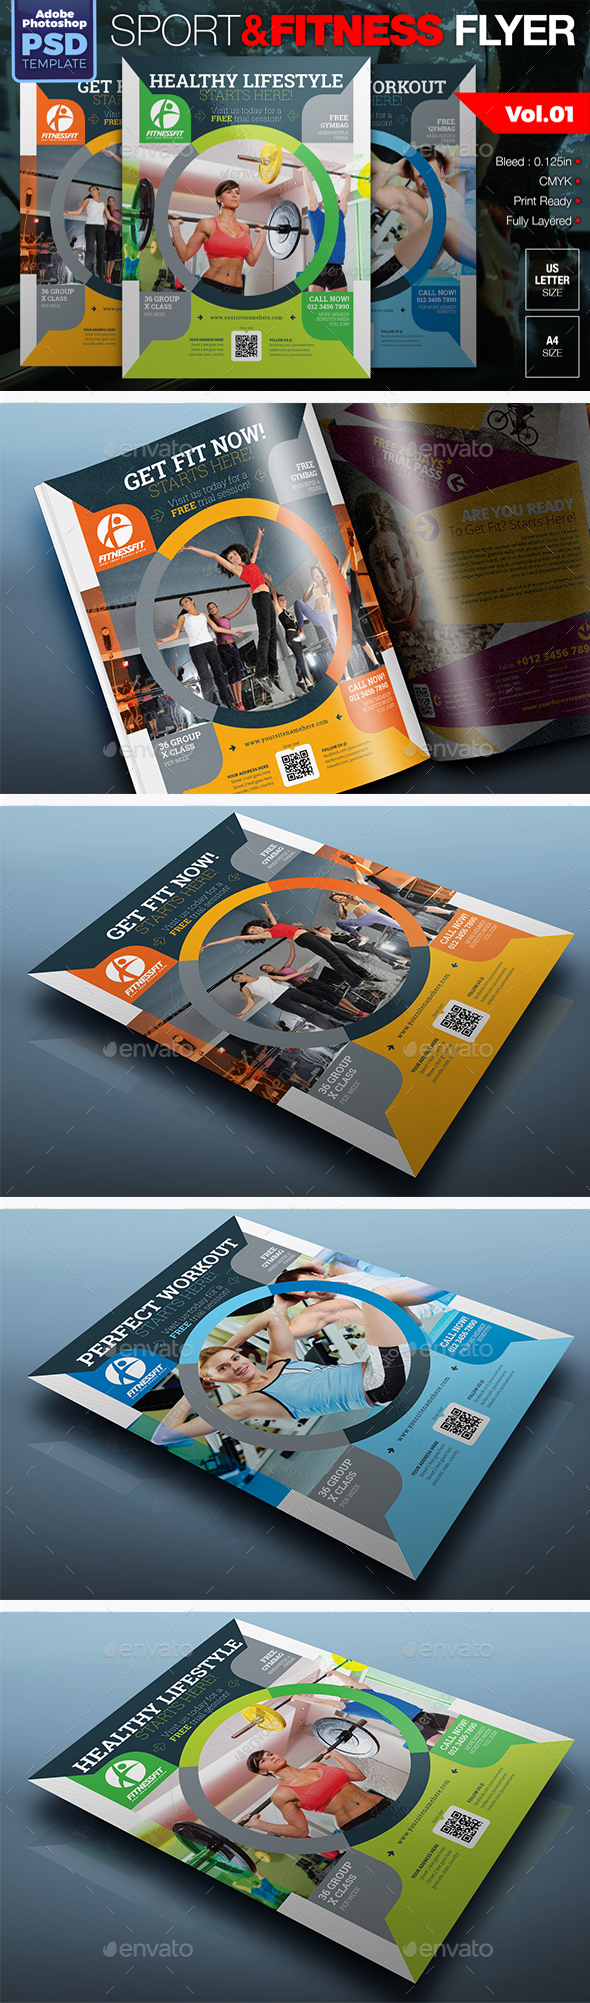 Sport & Fitness Flyer Vol.01 - Sports Events